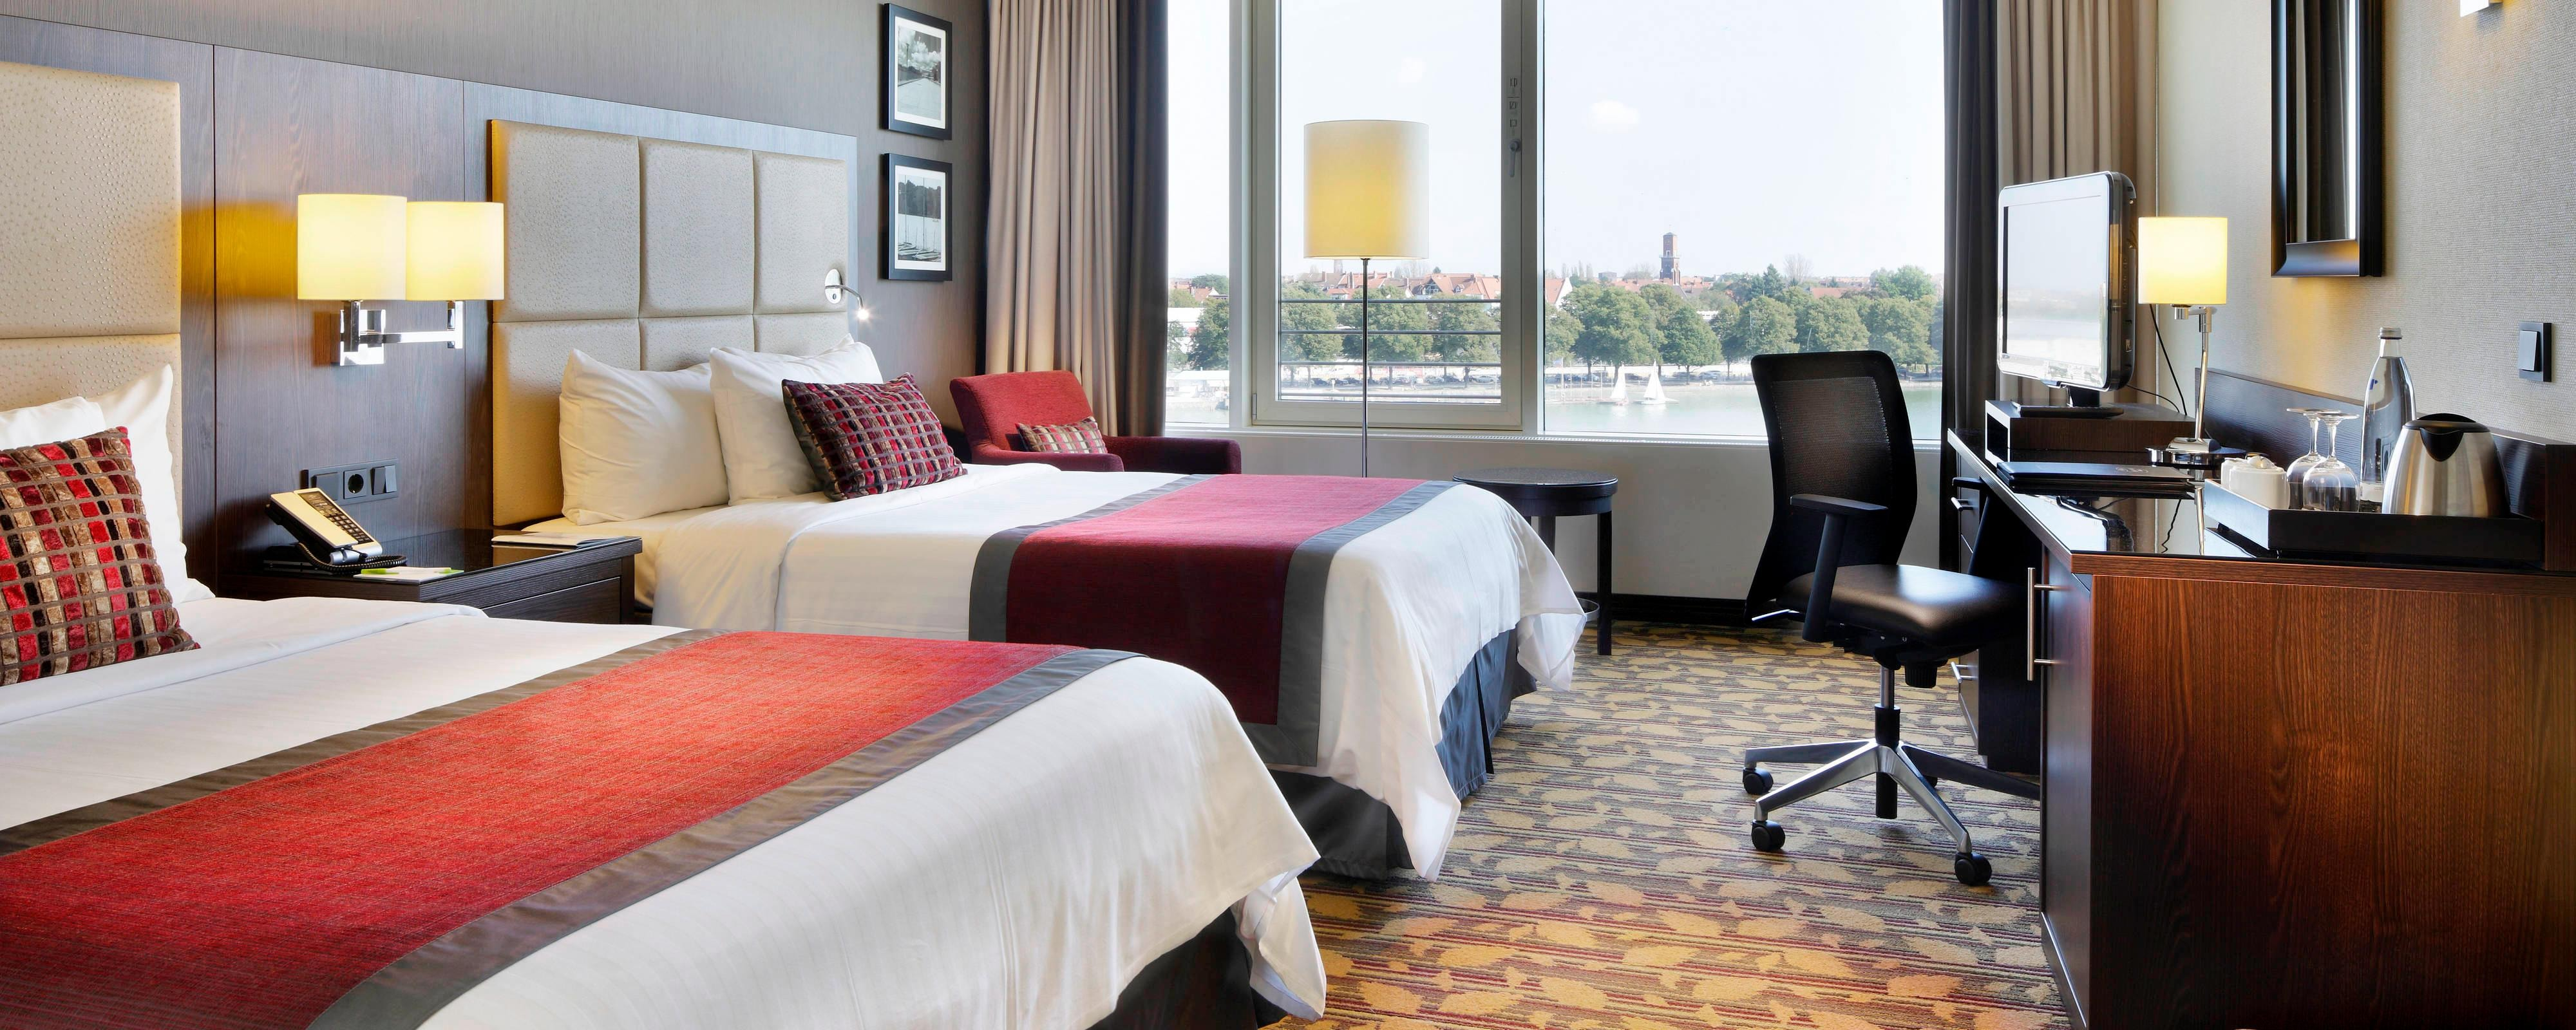 Hotel in Hannover - Courtyard Hannover Maschsee | Marriott ...